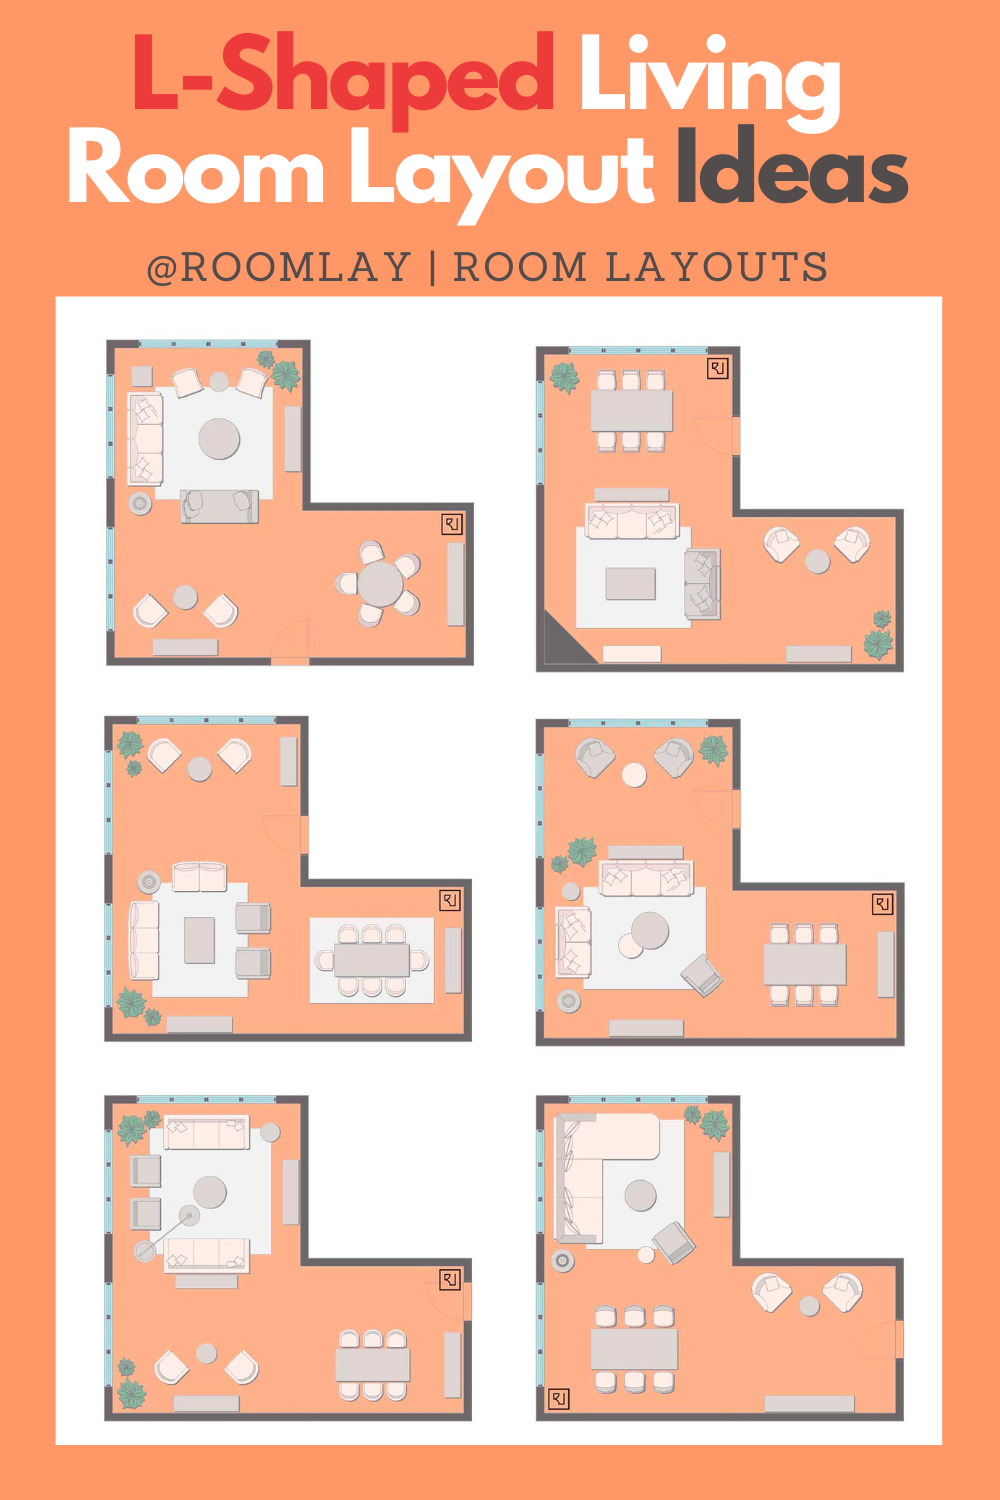 L Shaped Living Room Layout Ideas In 2021 Apartment Living Room Layout L Shaped Living Room L Shaped Living Room Layout